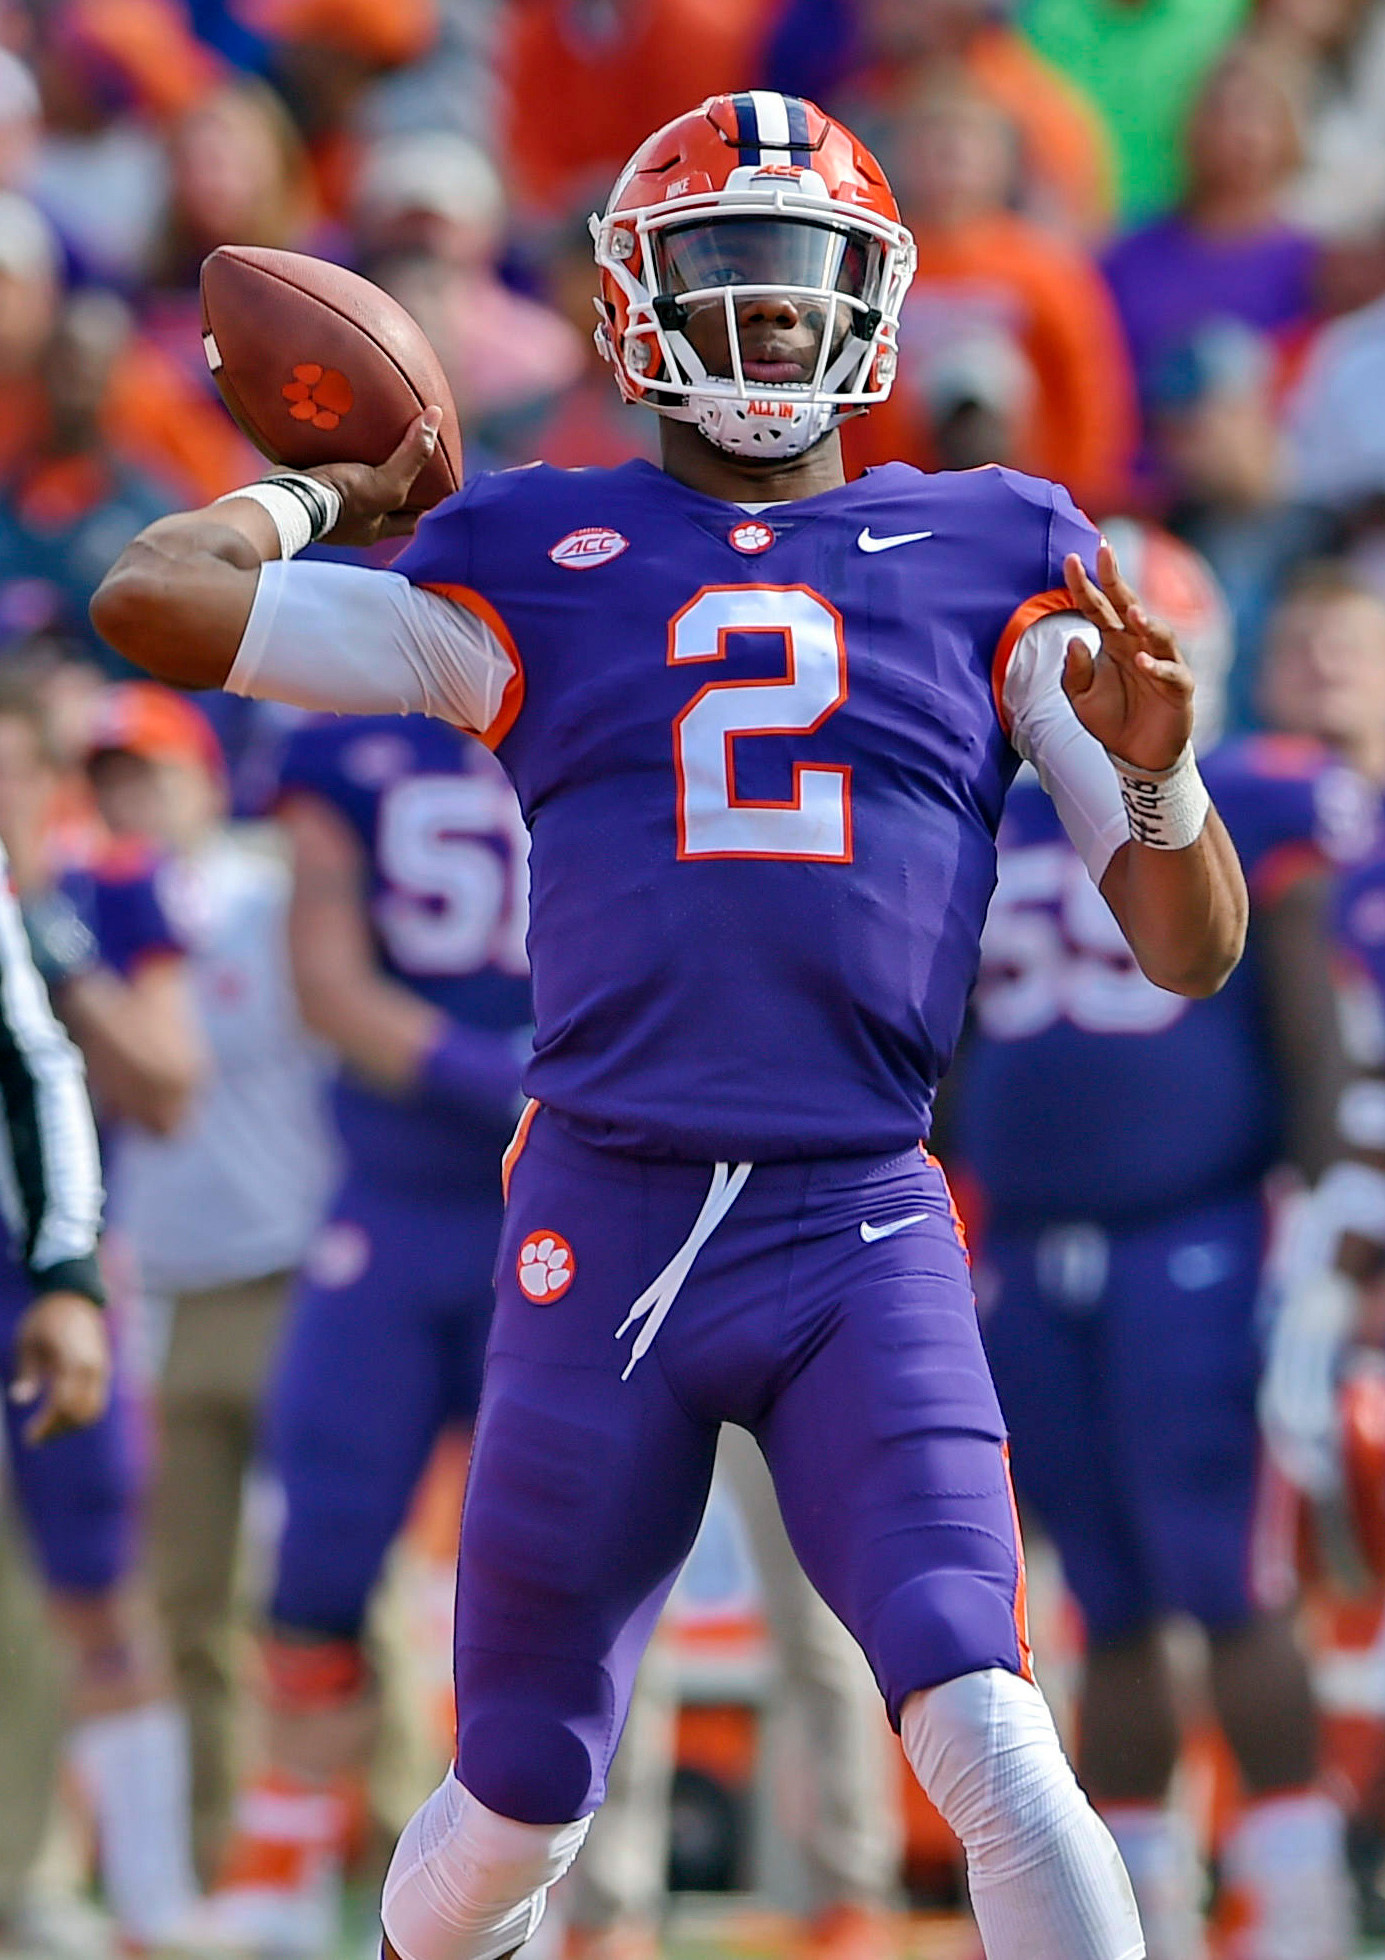 Clemson quarterback Kelly Bryant hopes to have a big game when the Tigers face South Carolina today in Columbia.